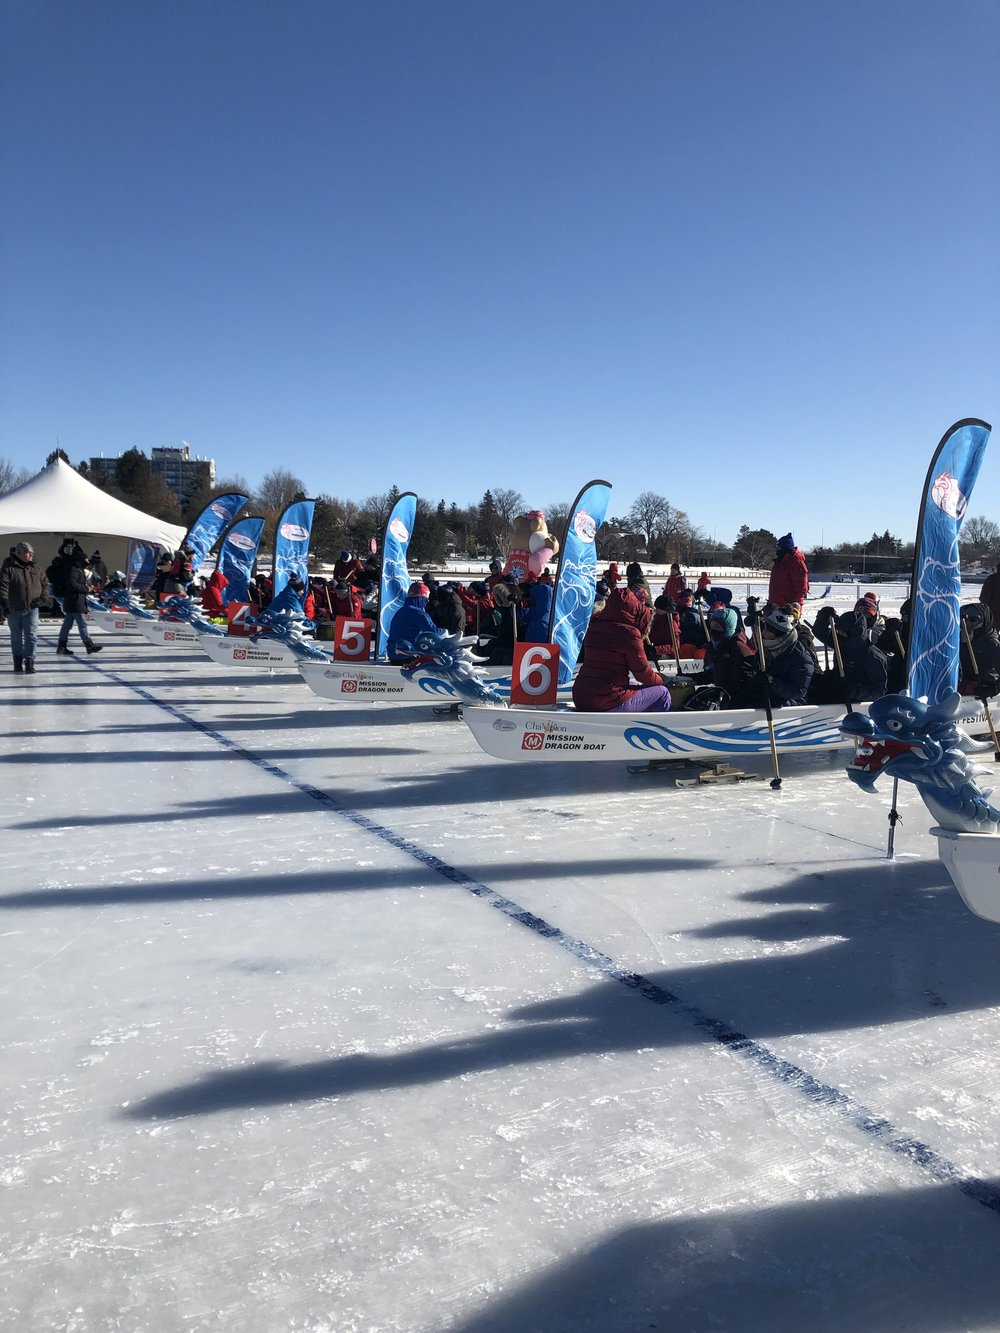 February 16, 2019  Ice Dragon Boat Race Festival which included the Shiver and Giver Fundraising Drive - Raised funds to help support Boys & Girls Club Ottawa, Ottawa Sens Foundation, OSEG Foundation, Tim Horton's Children's Foundation, ODBF Community Fund